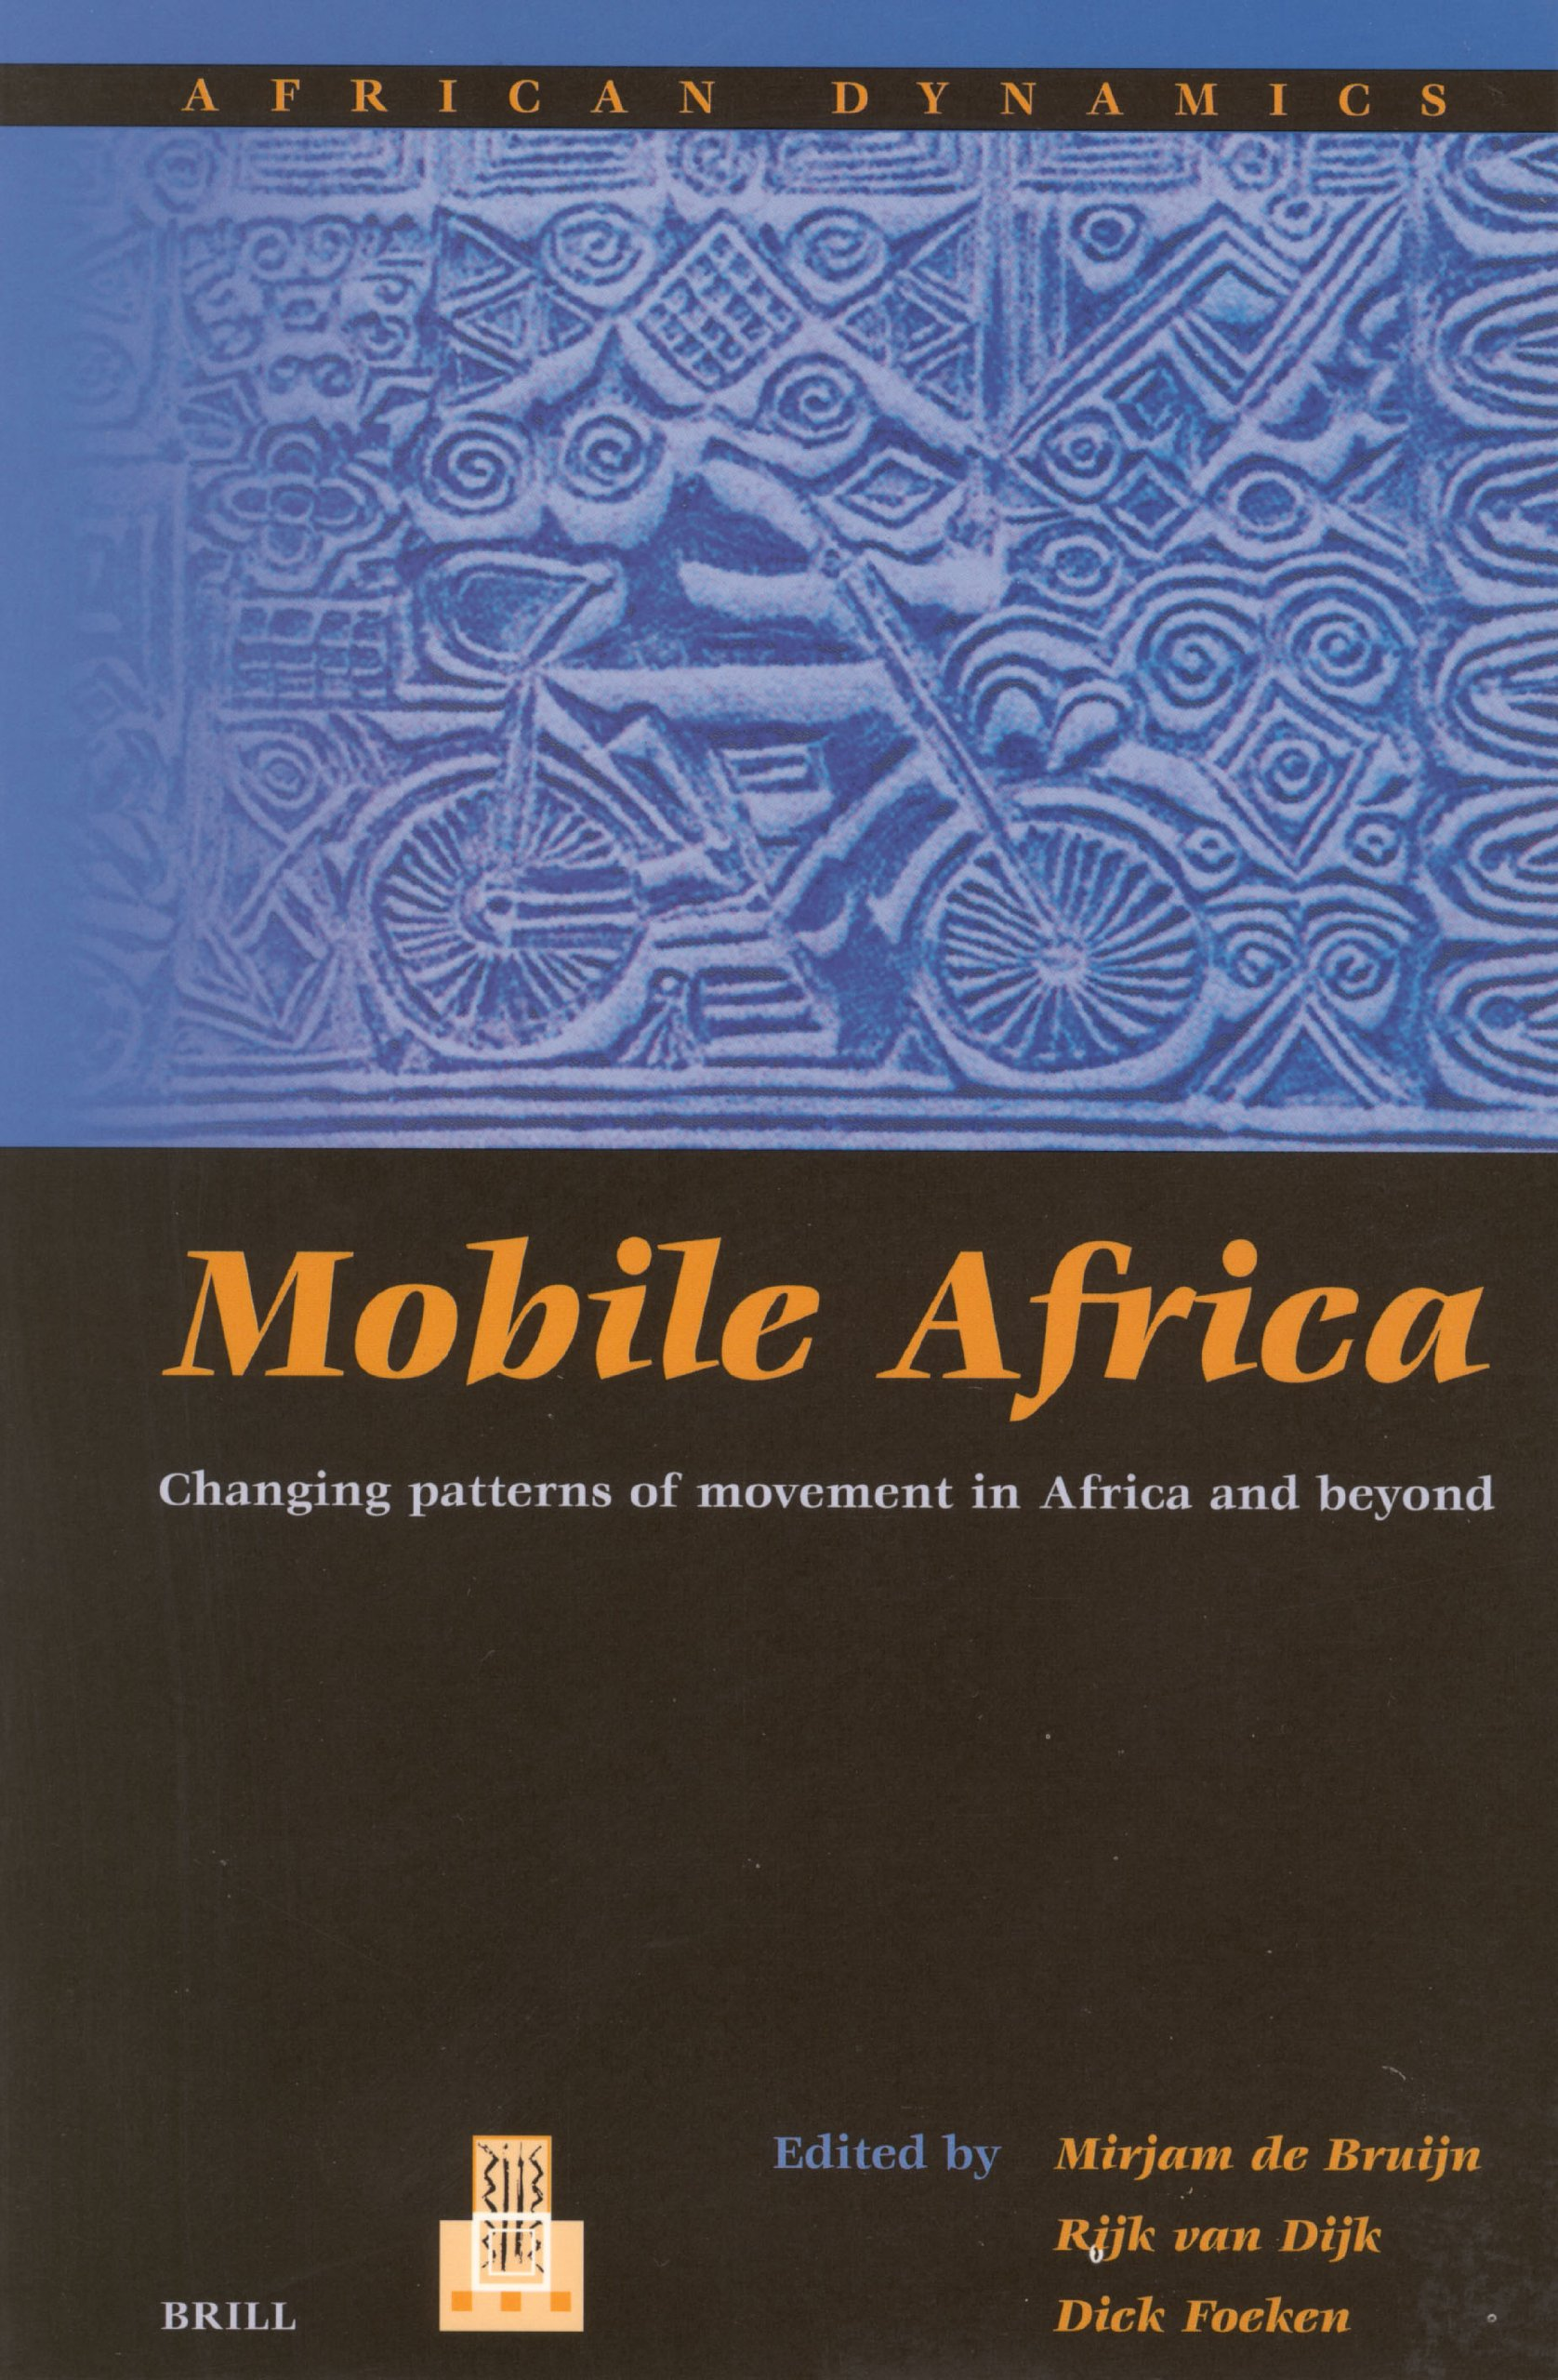 Mobile Africa: Changing Patterns of Movement in Africa and Beyond (African Dynamics) pdf epub